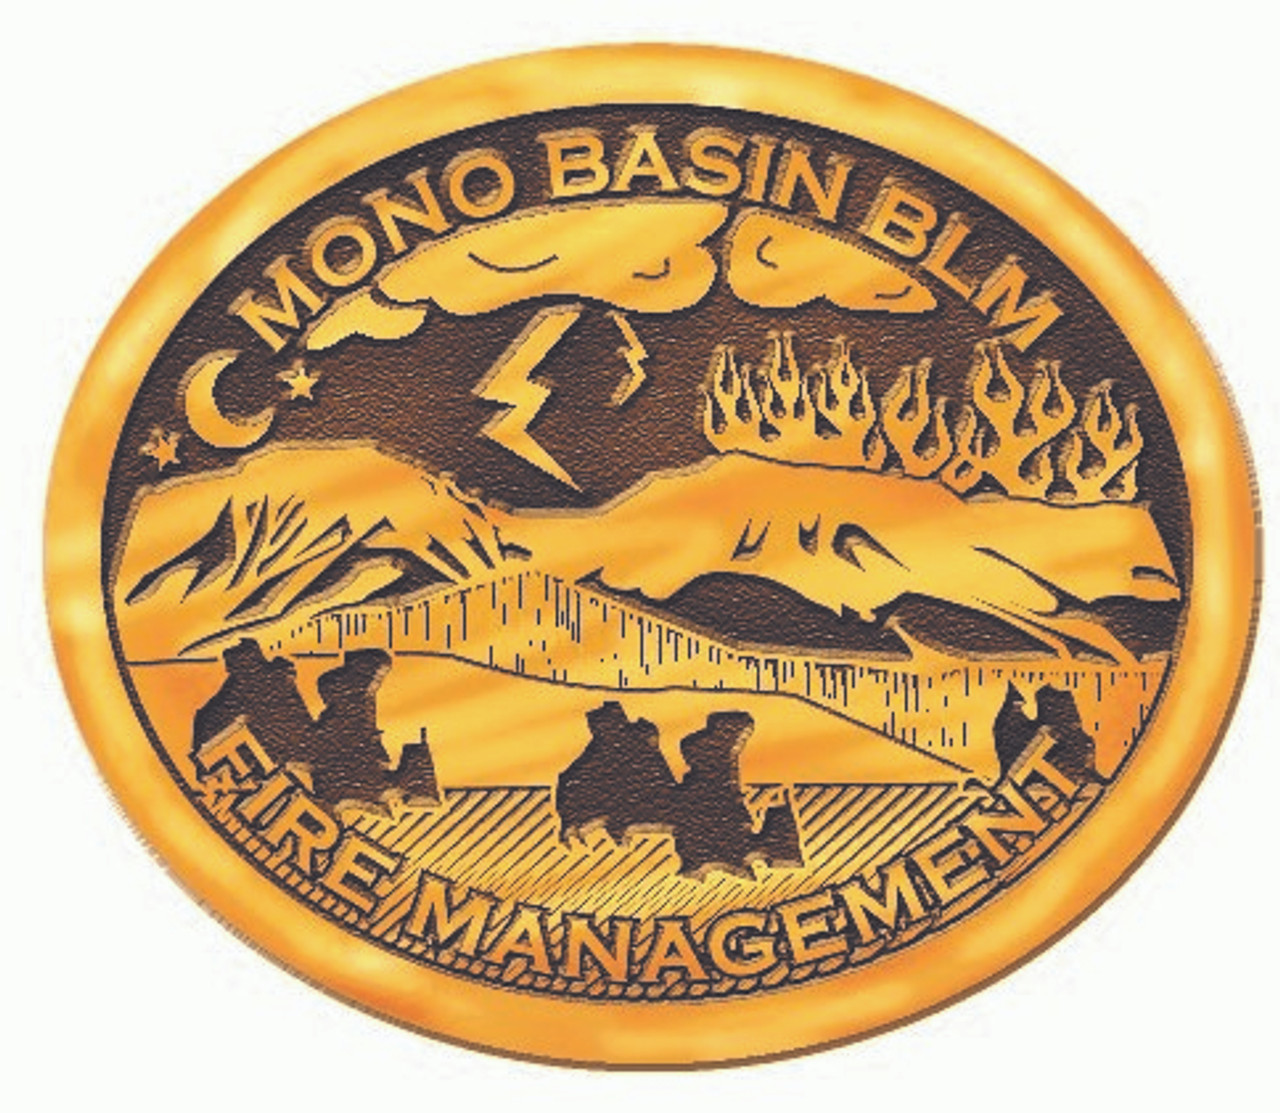 Mono Basin BLM Fire Management Buckle (RESTRICTED)